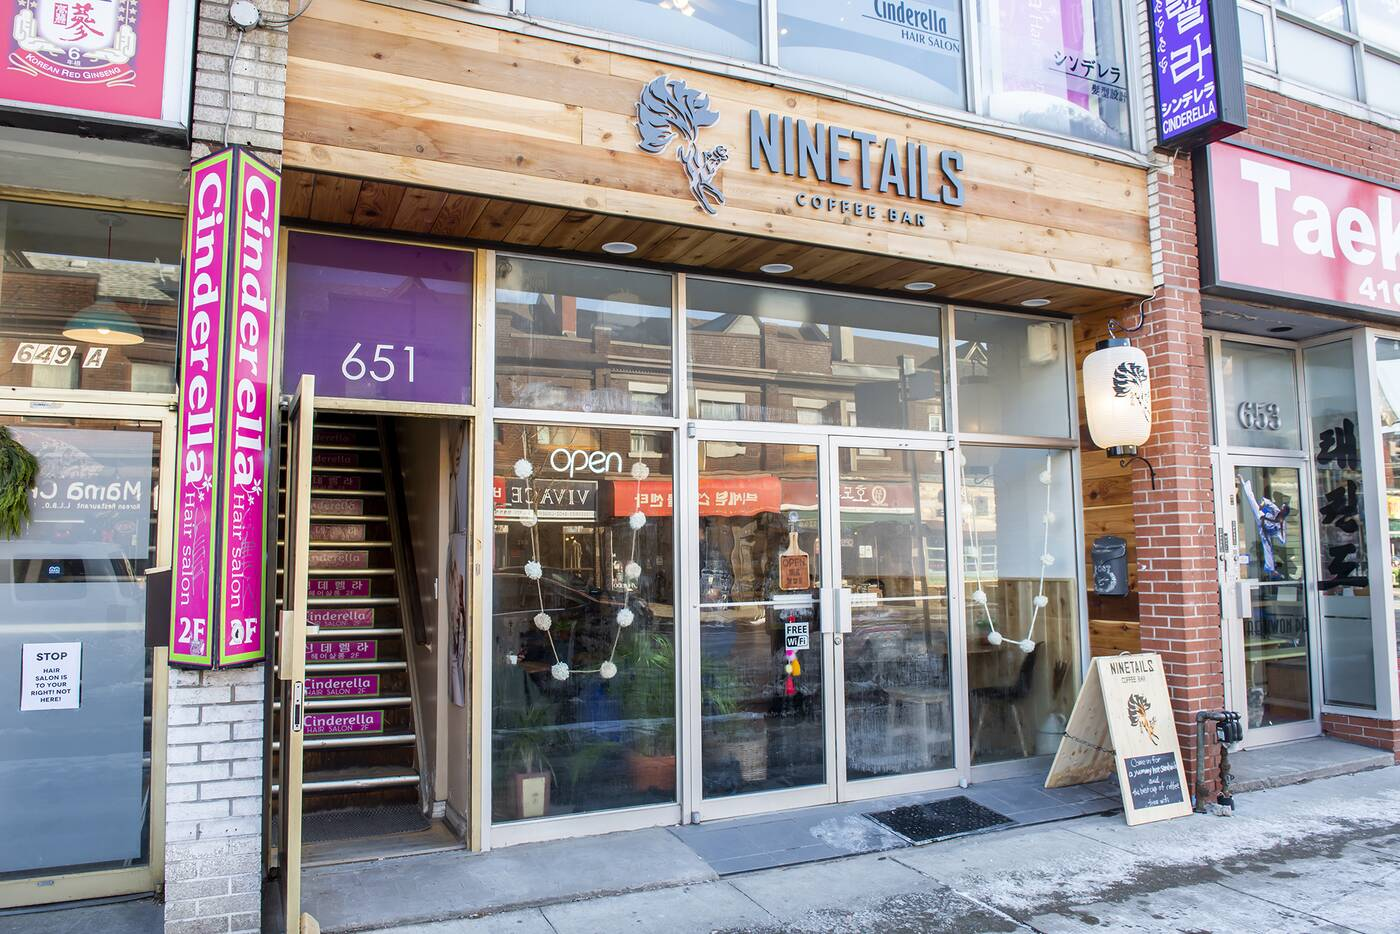 ninetails coffee shop toronto